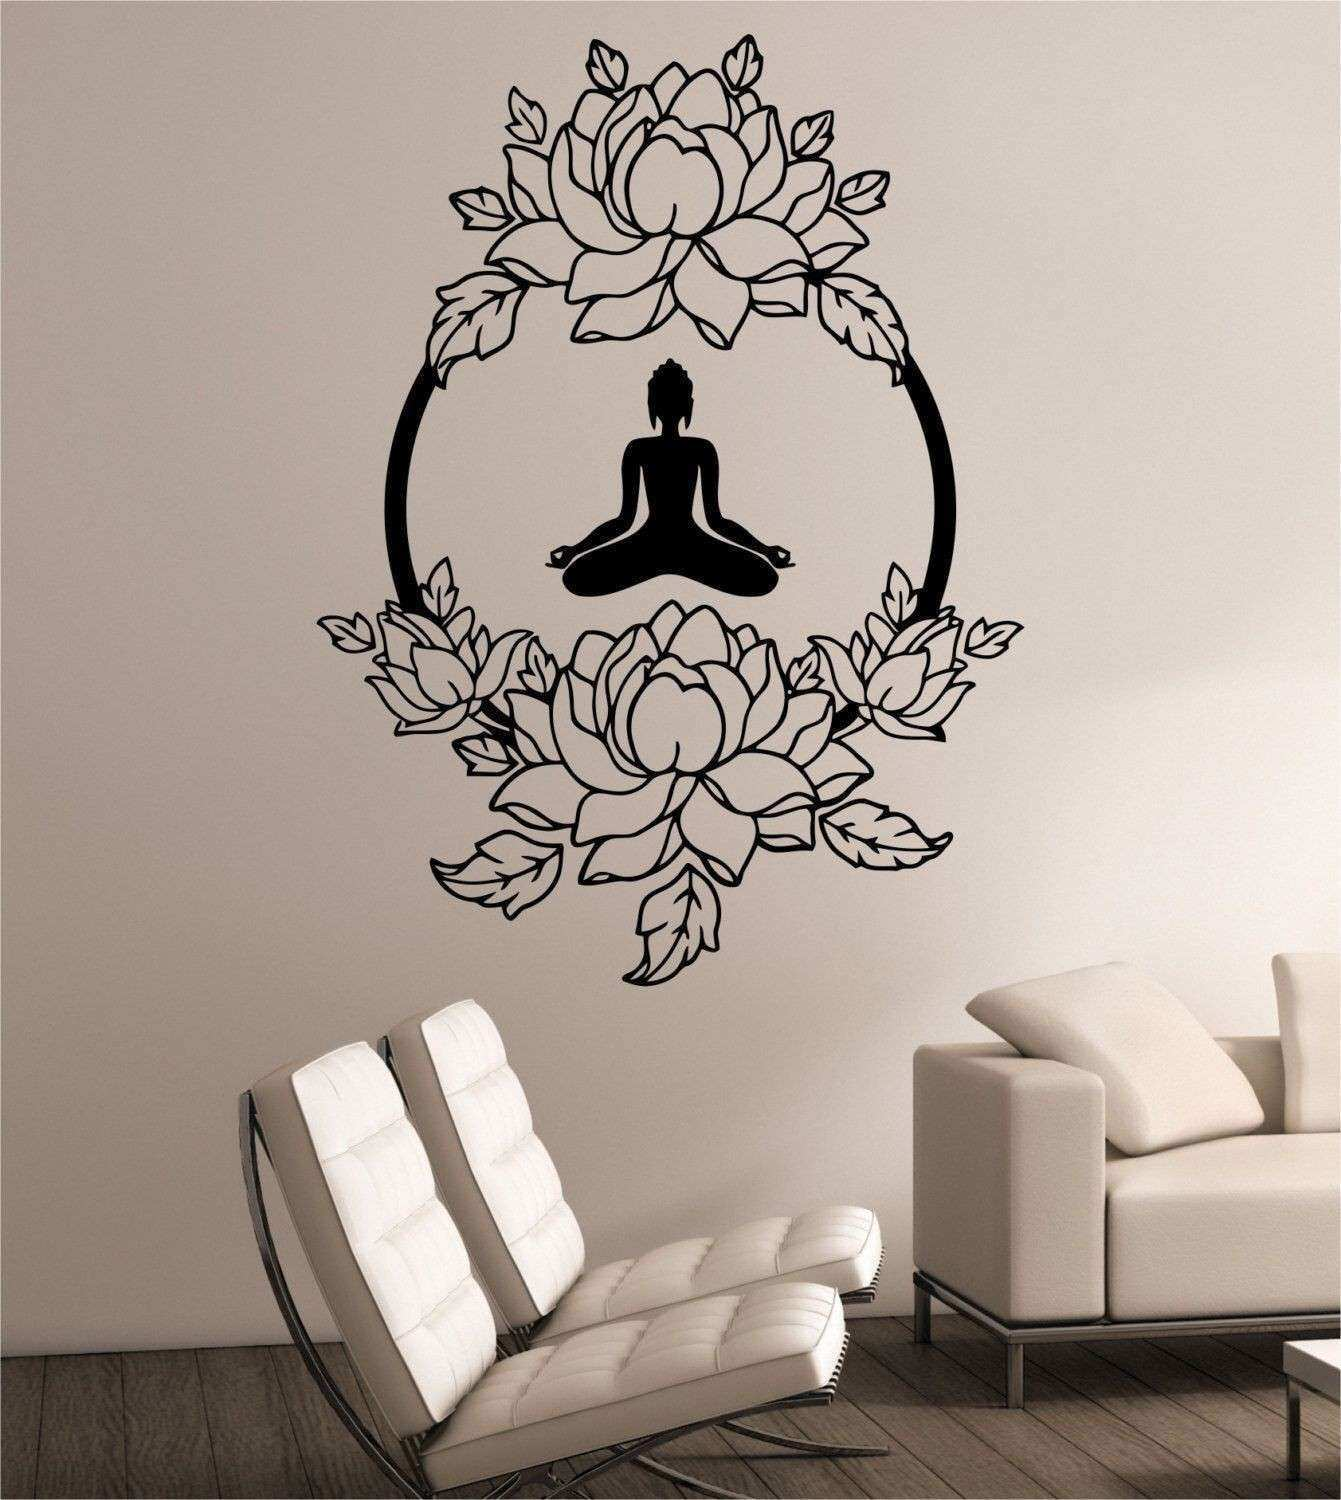 Bedroom Artwork Ideas Fresh Wall Decal Luxury 1 Kirkland Wall Decor